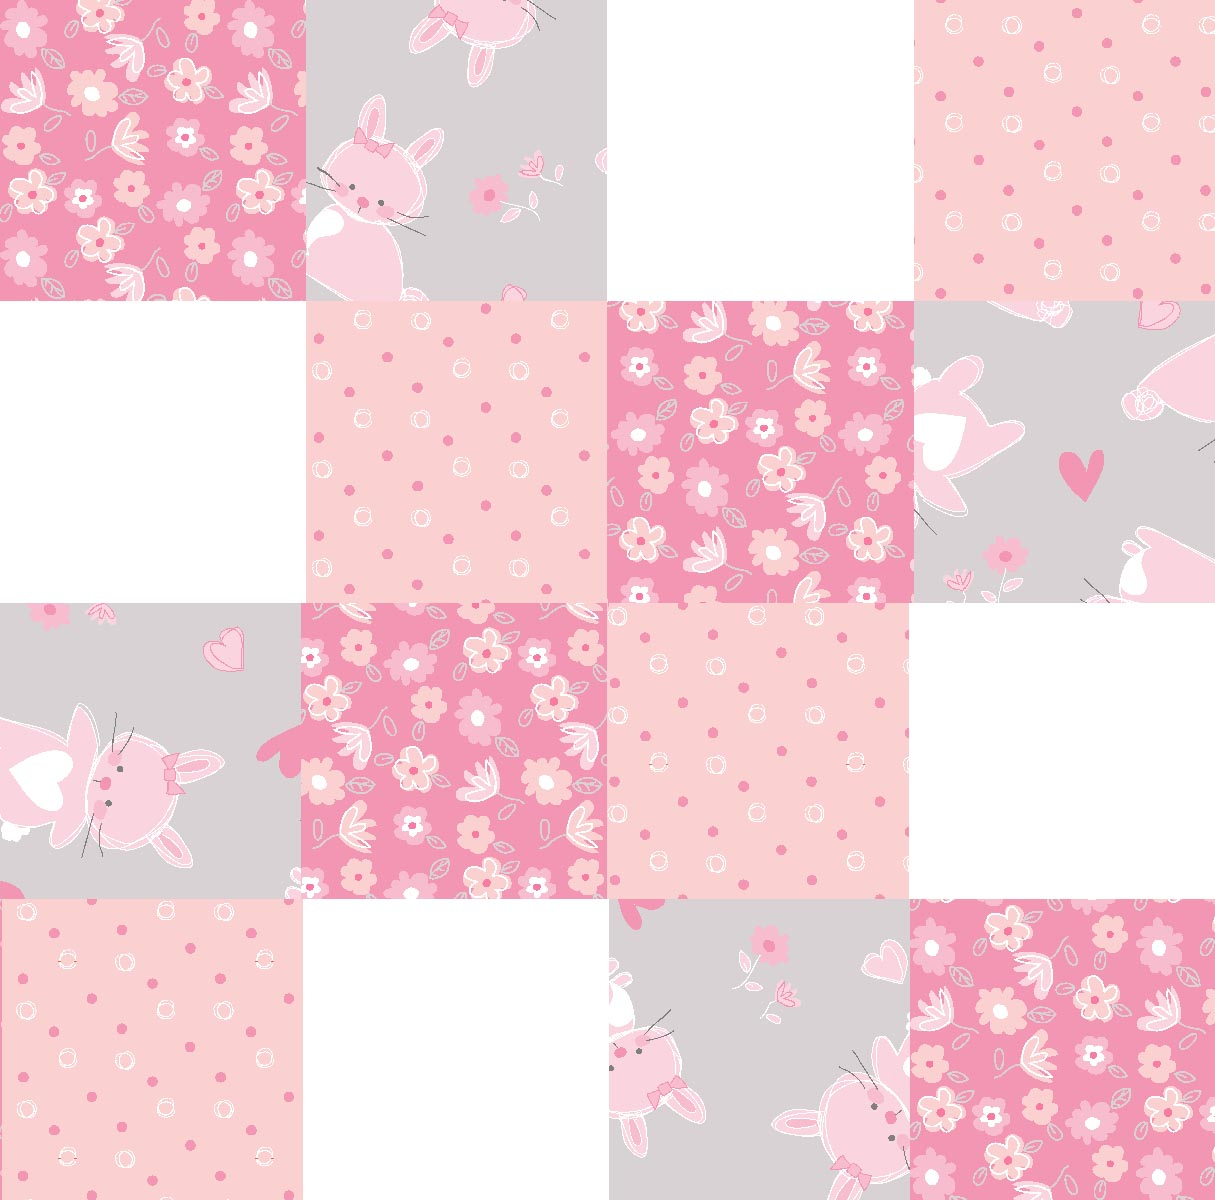 Cute As A Bunny Patches 4x4 Multi Substrate Fabric by the Yard